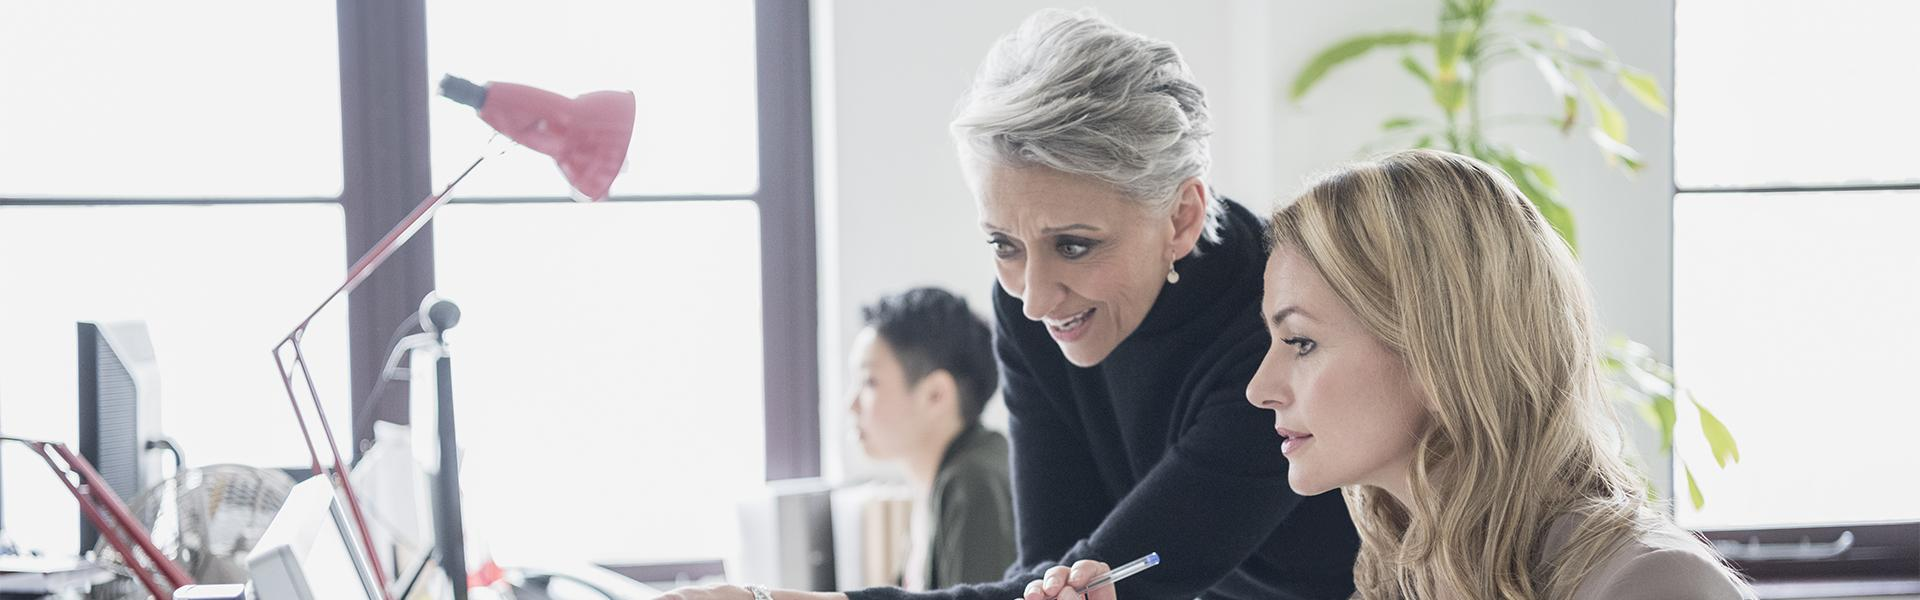 Female colleagues collaborating in the workplace